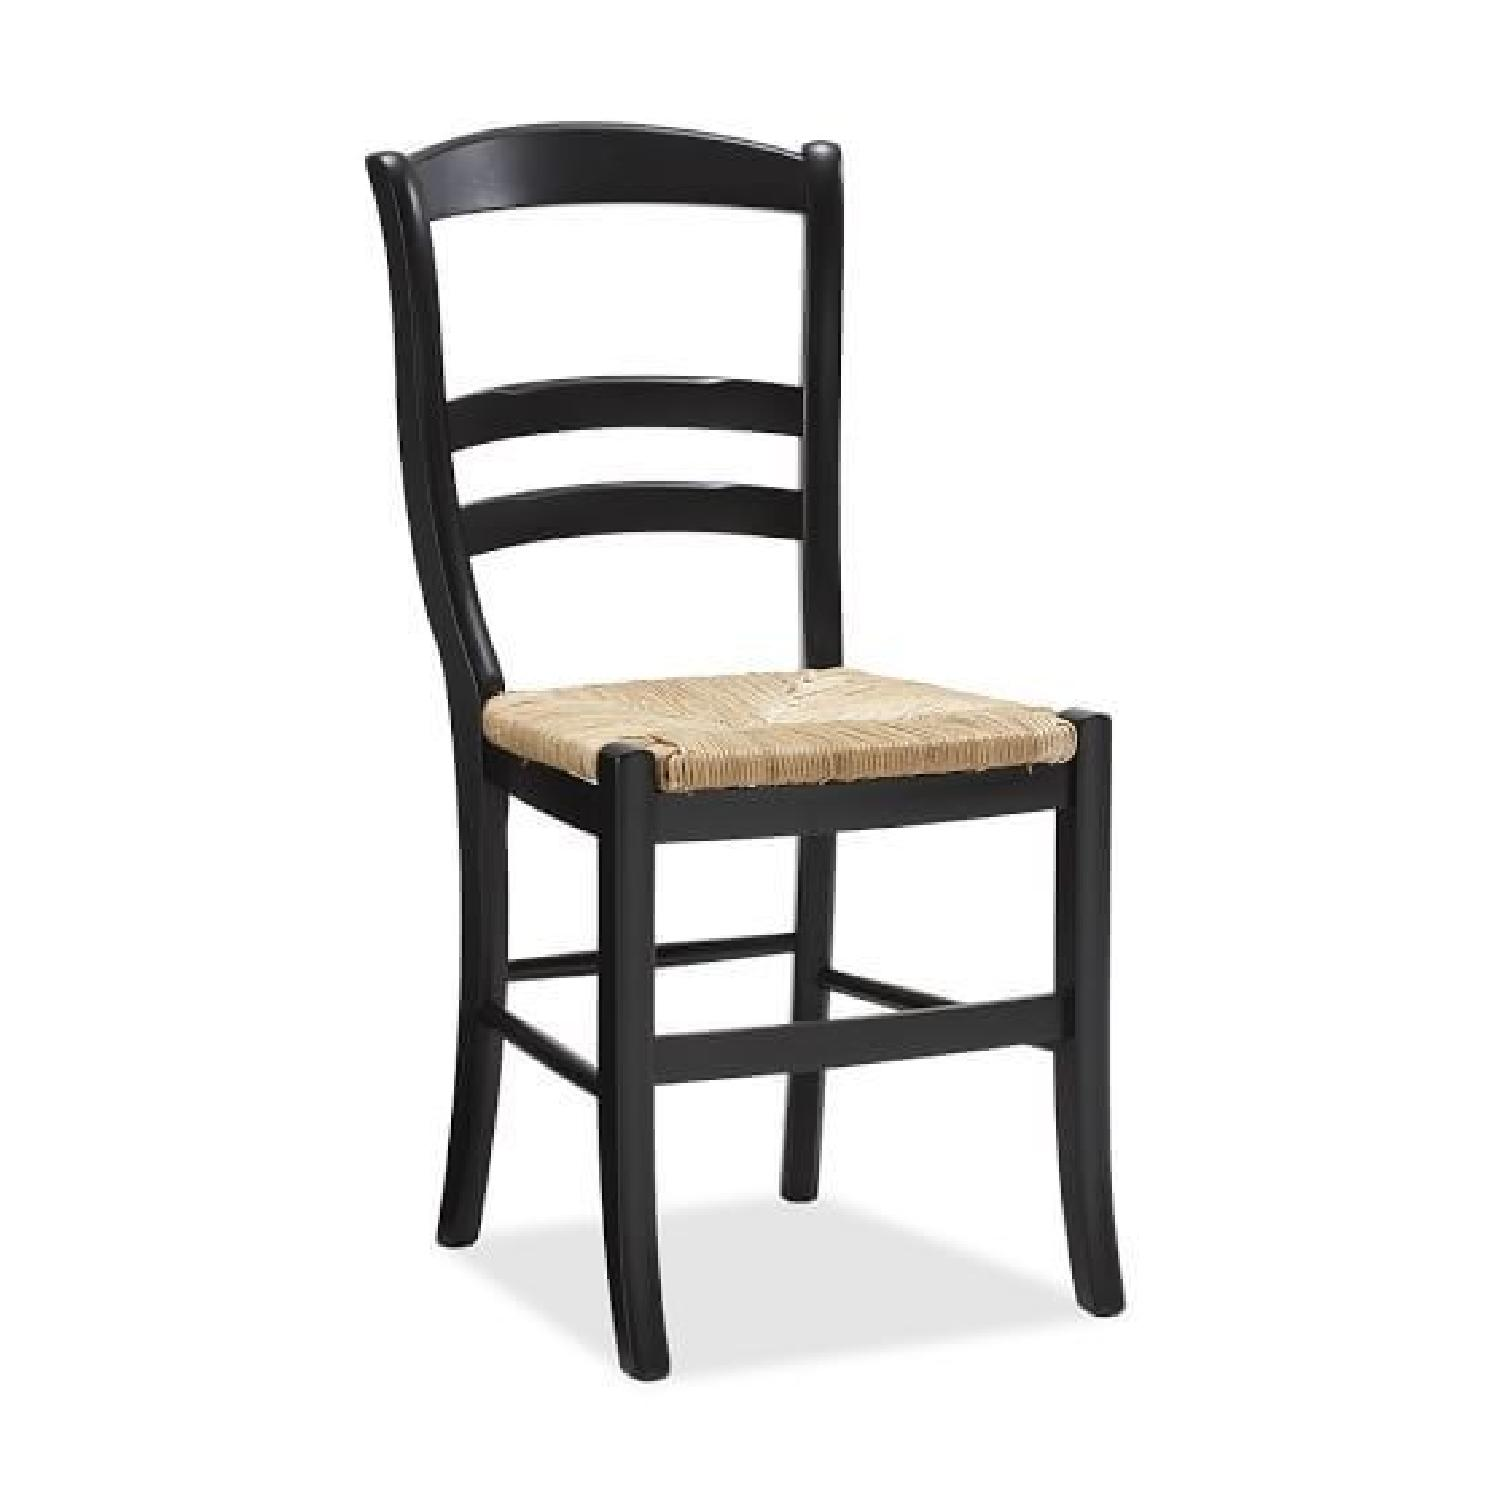 Pottery Barn Isabella Dining Chairs in Black - AptDeco